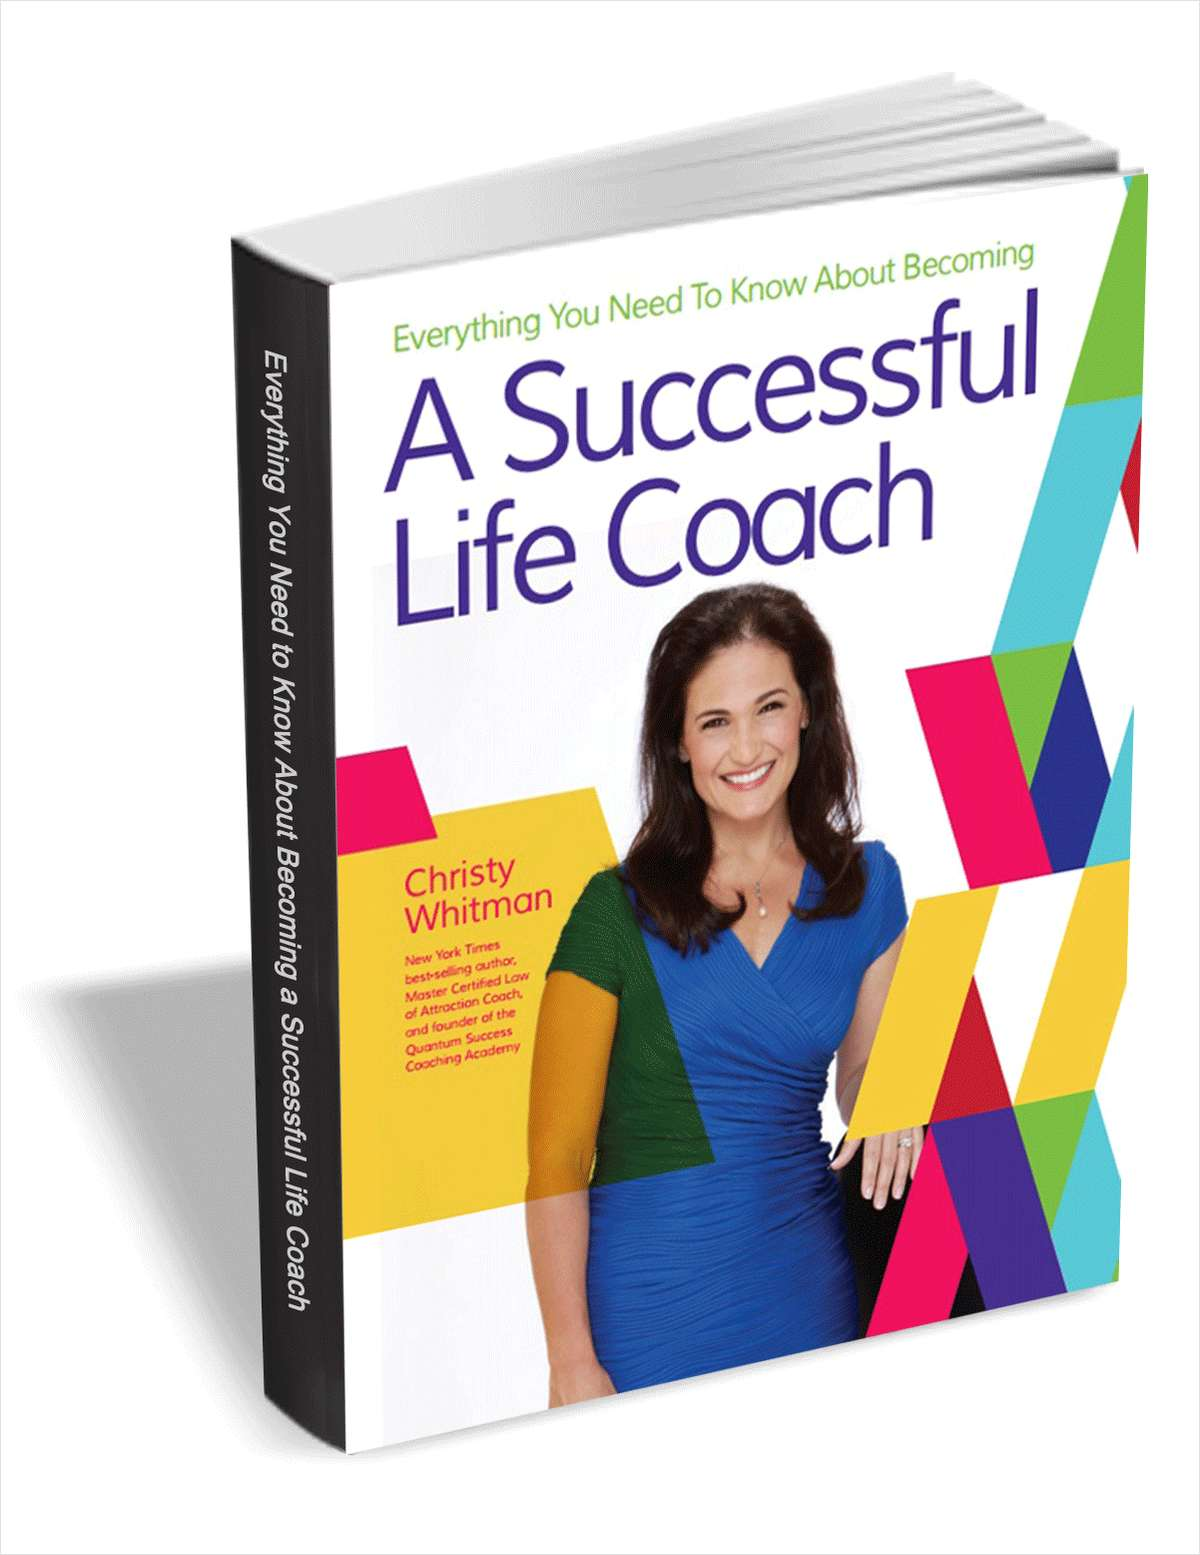 Everything You Need to Know to Become a Successful Life Coach